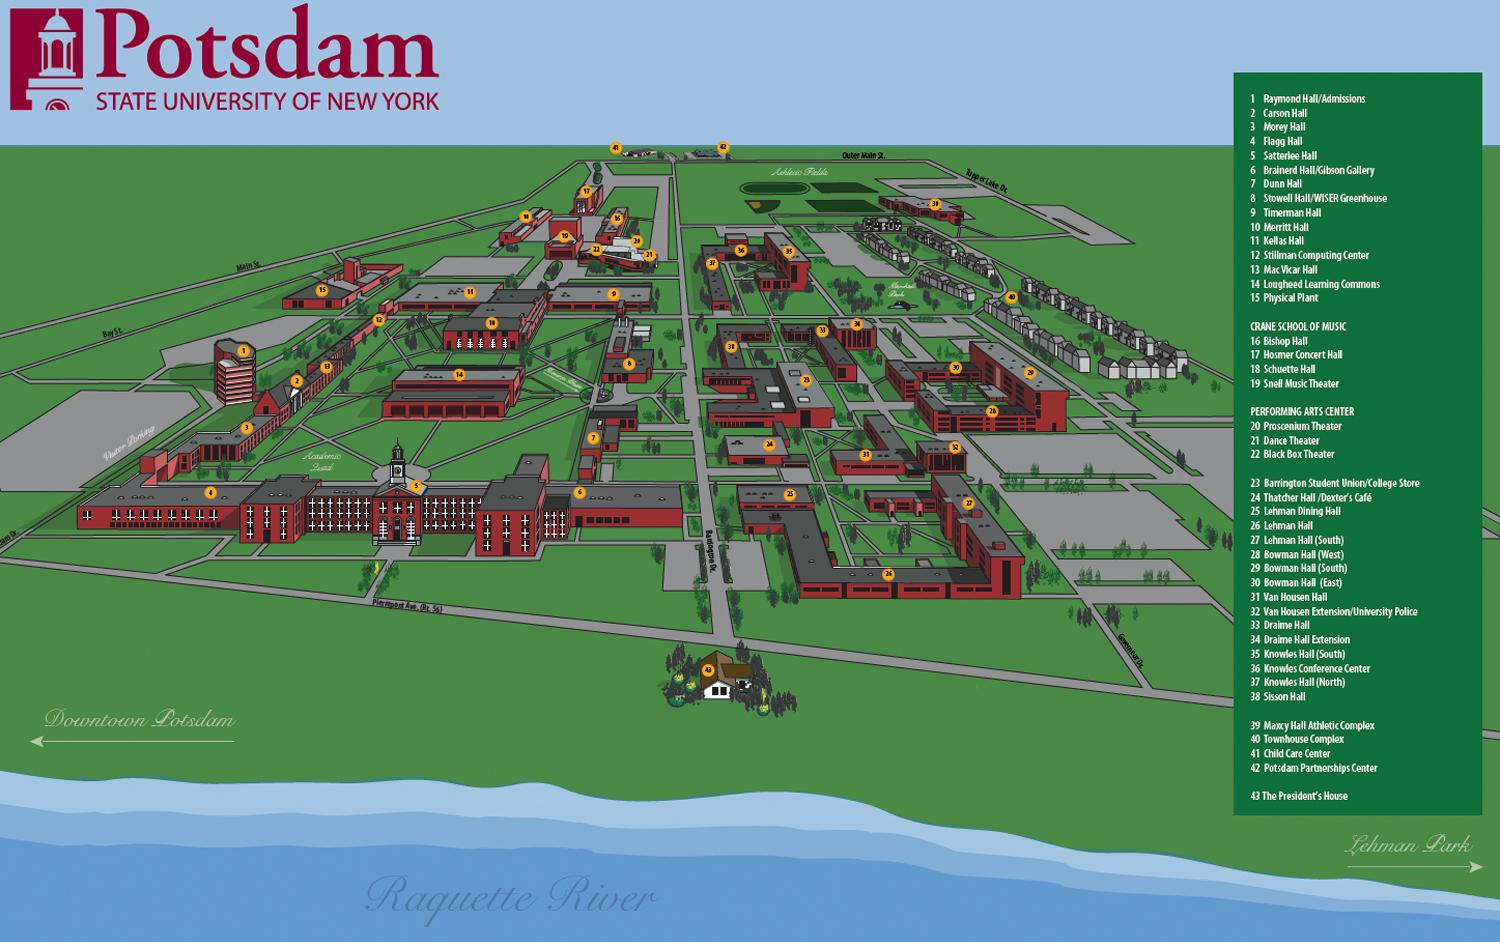 Map Of Potsdam Campus Free Download Oasis Dl Co